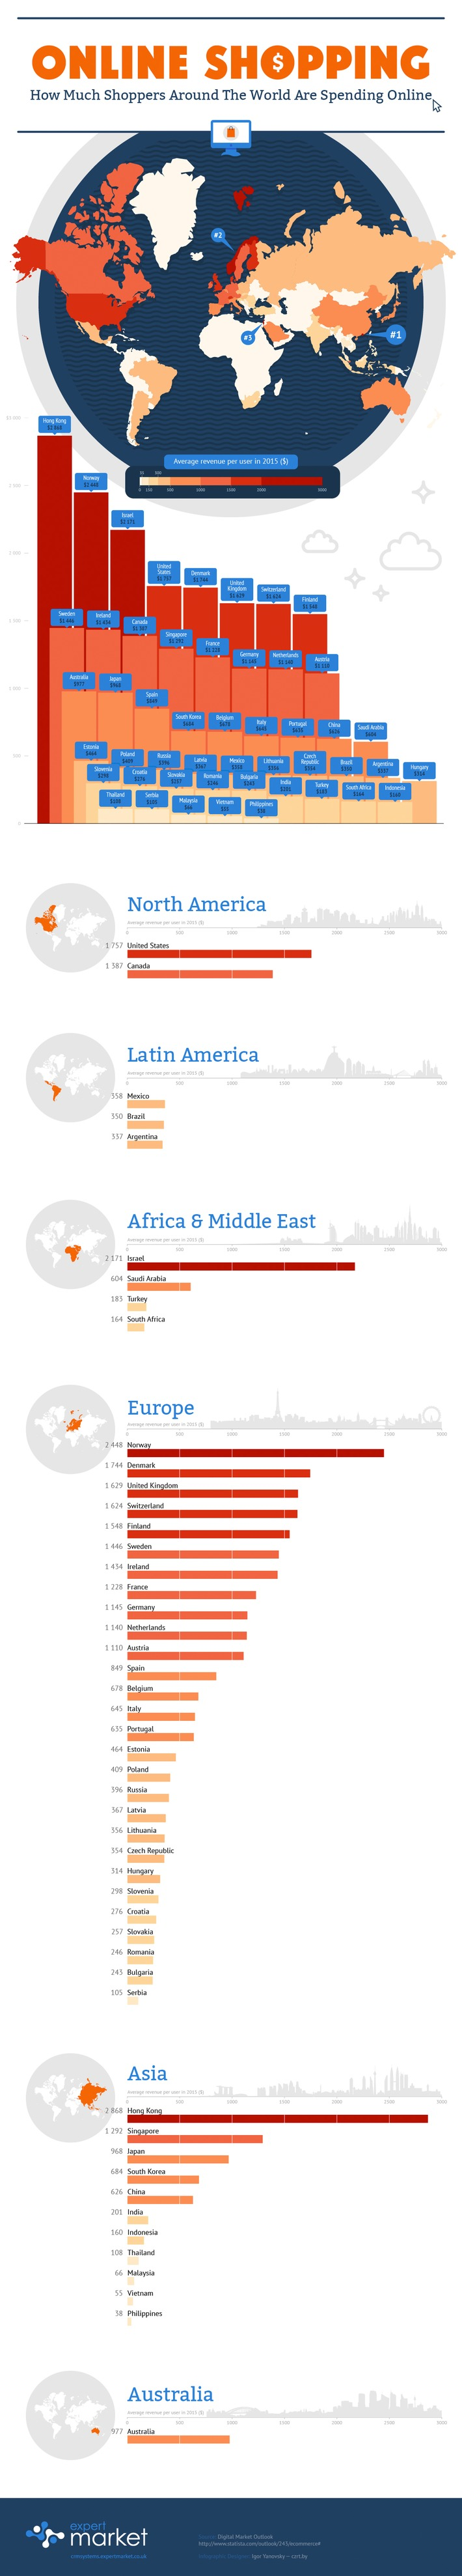 Which Country Spends the Most Online? #Infographic | Consumption Junction | Scoop.it